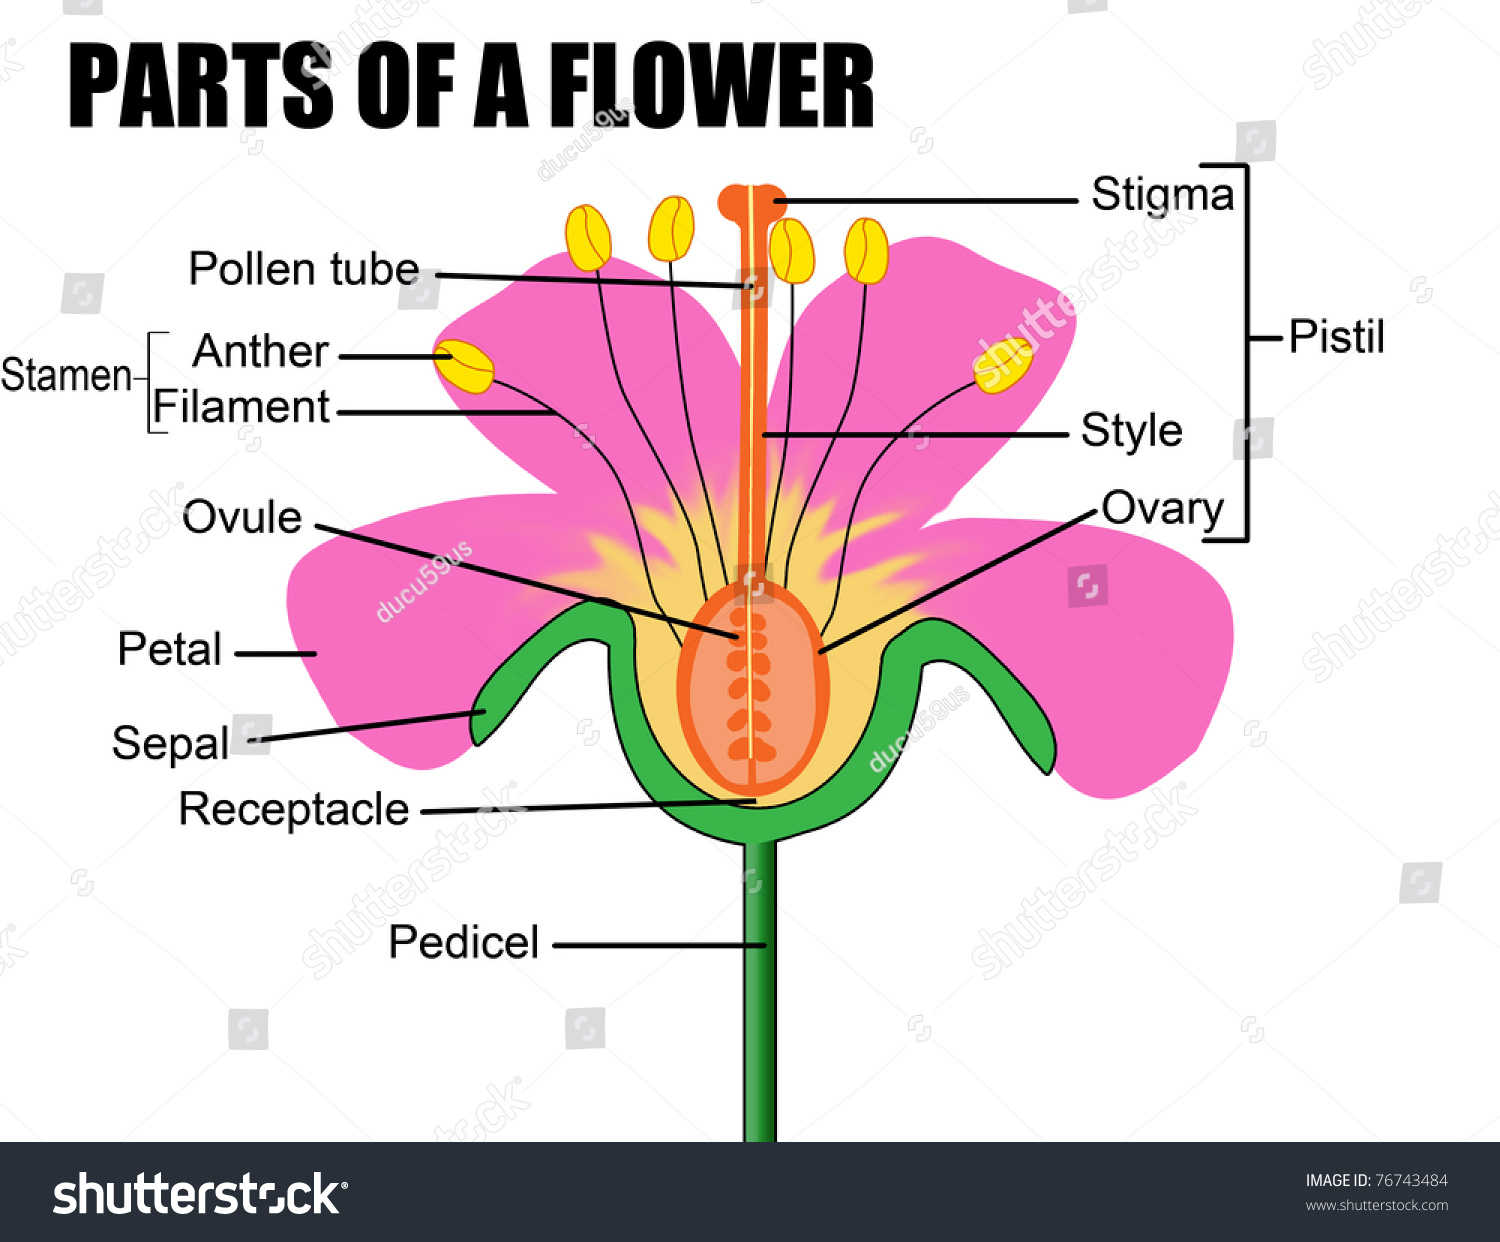 Diagram showing a structure of flower wiring diagram parts flower vector illustration flower diagram stock vector rh shutterstock com typical flower diagram plant basic flower parts diagram ccuart Gallery